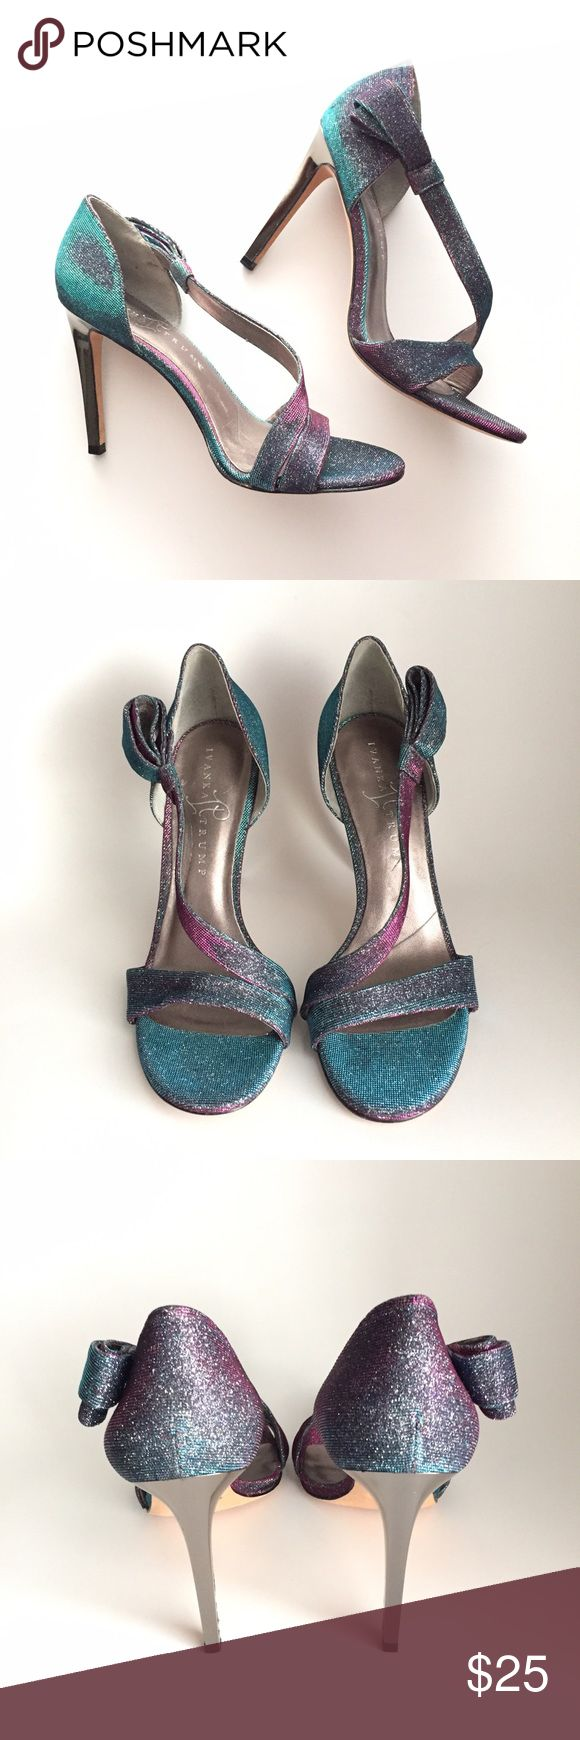 🔹Ivanka Trump🔹Cecily sandals The iridescent Cecily shoe from Ivanka Trump. Made of blue rose glitter mesh with bow detail at the ankle. Excellent condition, no scuffs -- any darker areas in photos are just the effect of the lighting on the material. No scratches on the heel. Only used once for a wedding. 4 inch heel. Ivanka Trump Shoes Heels